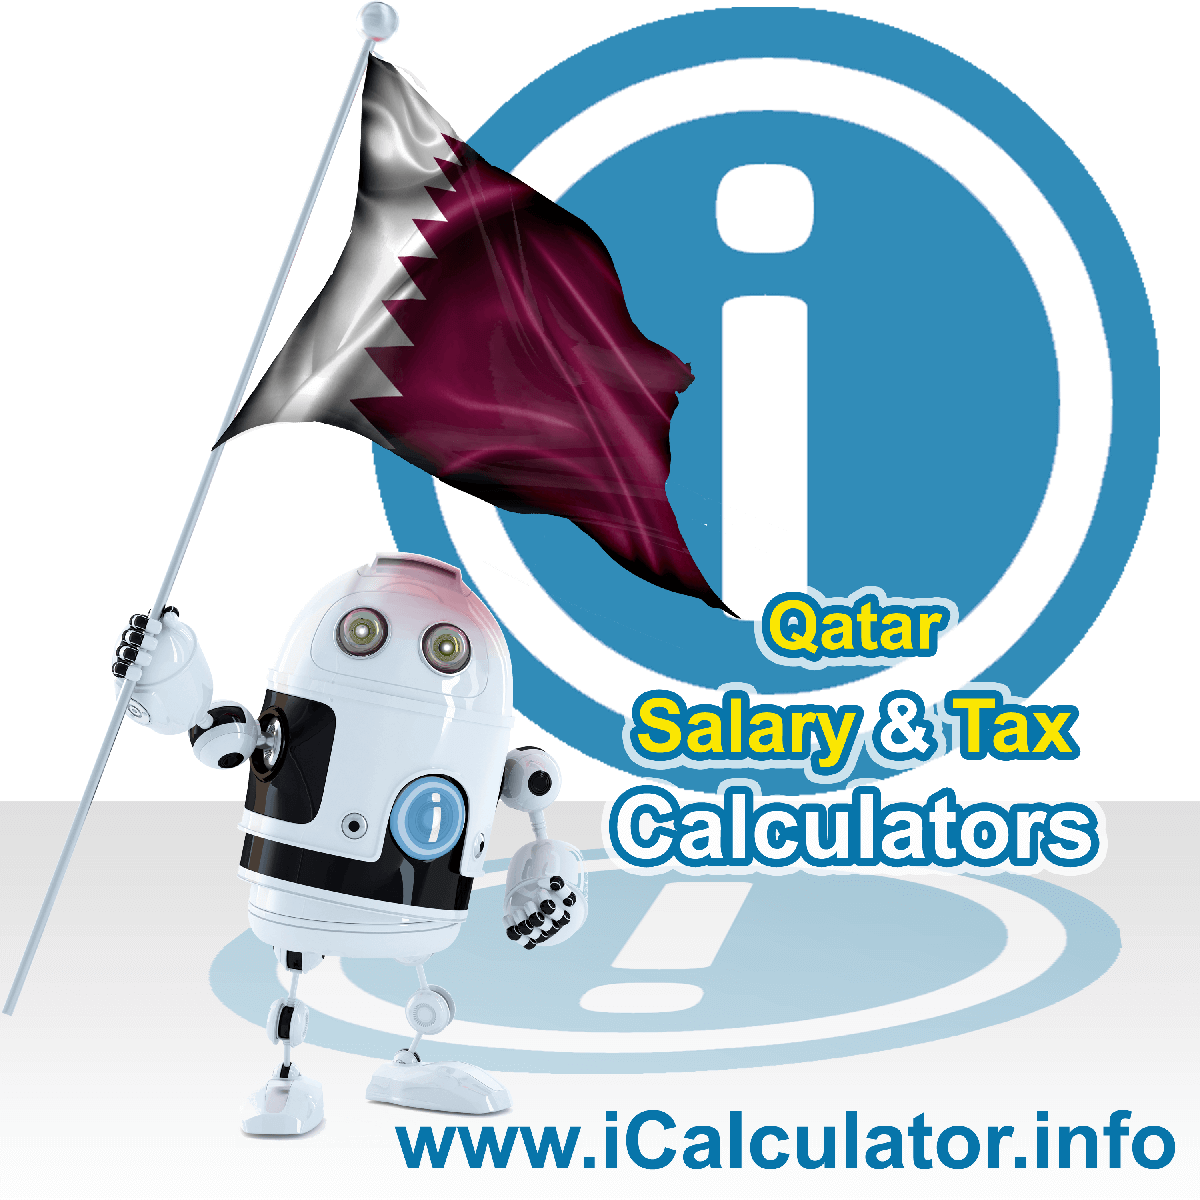 Qatar Wage Calculator. This image shows the Qatar flag and information relating to the tax formula for the Qatar Tax Calculator